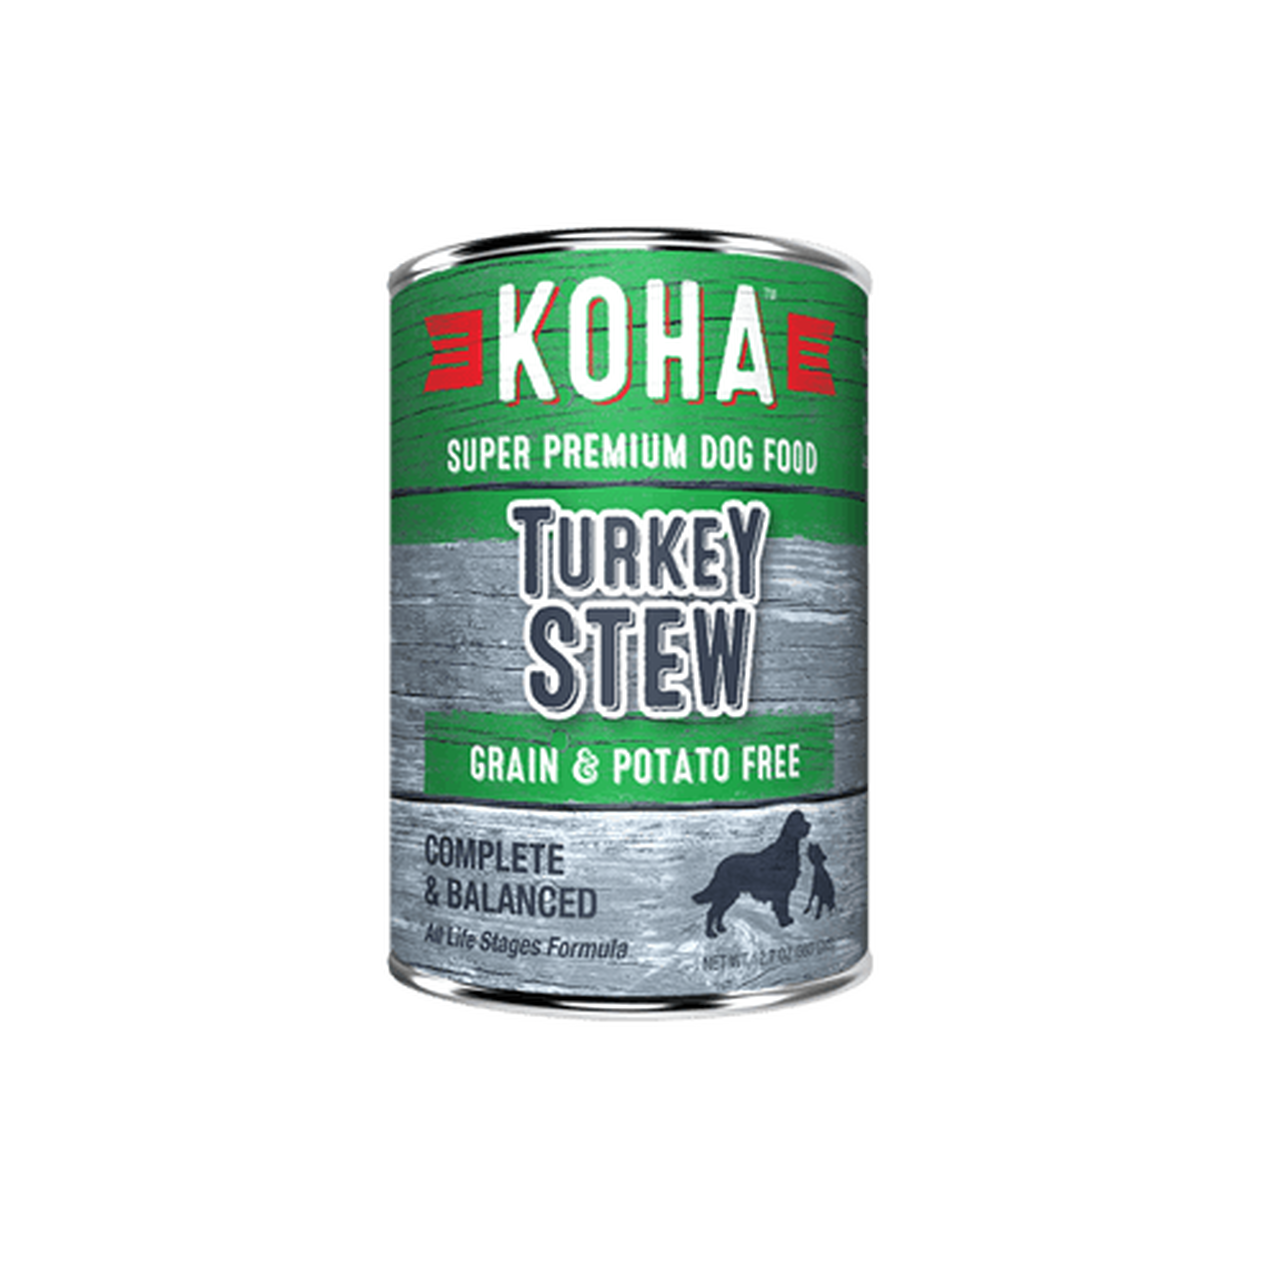 Koha Koha Dog Can Grain Free Turkey Stew 12.7 oz Product Image